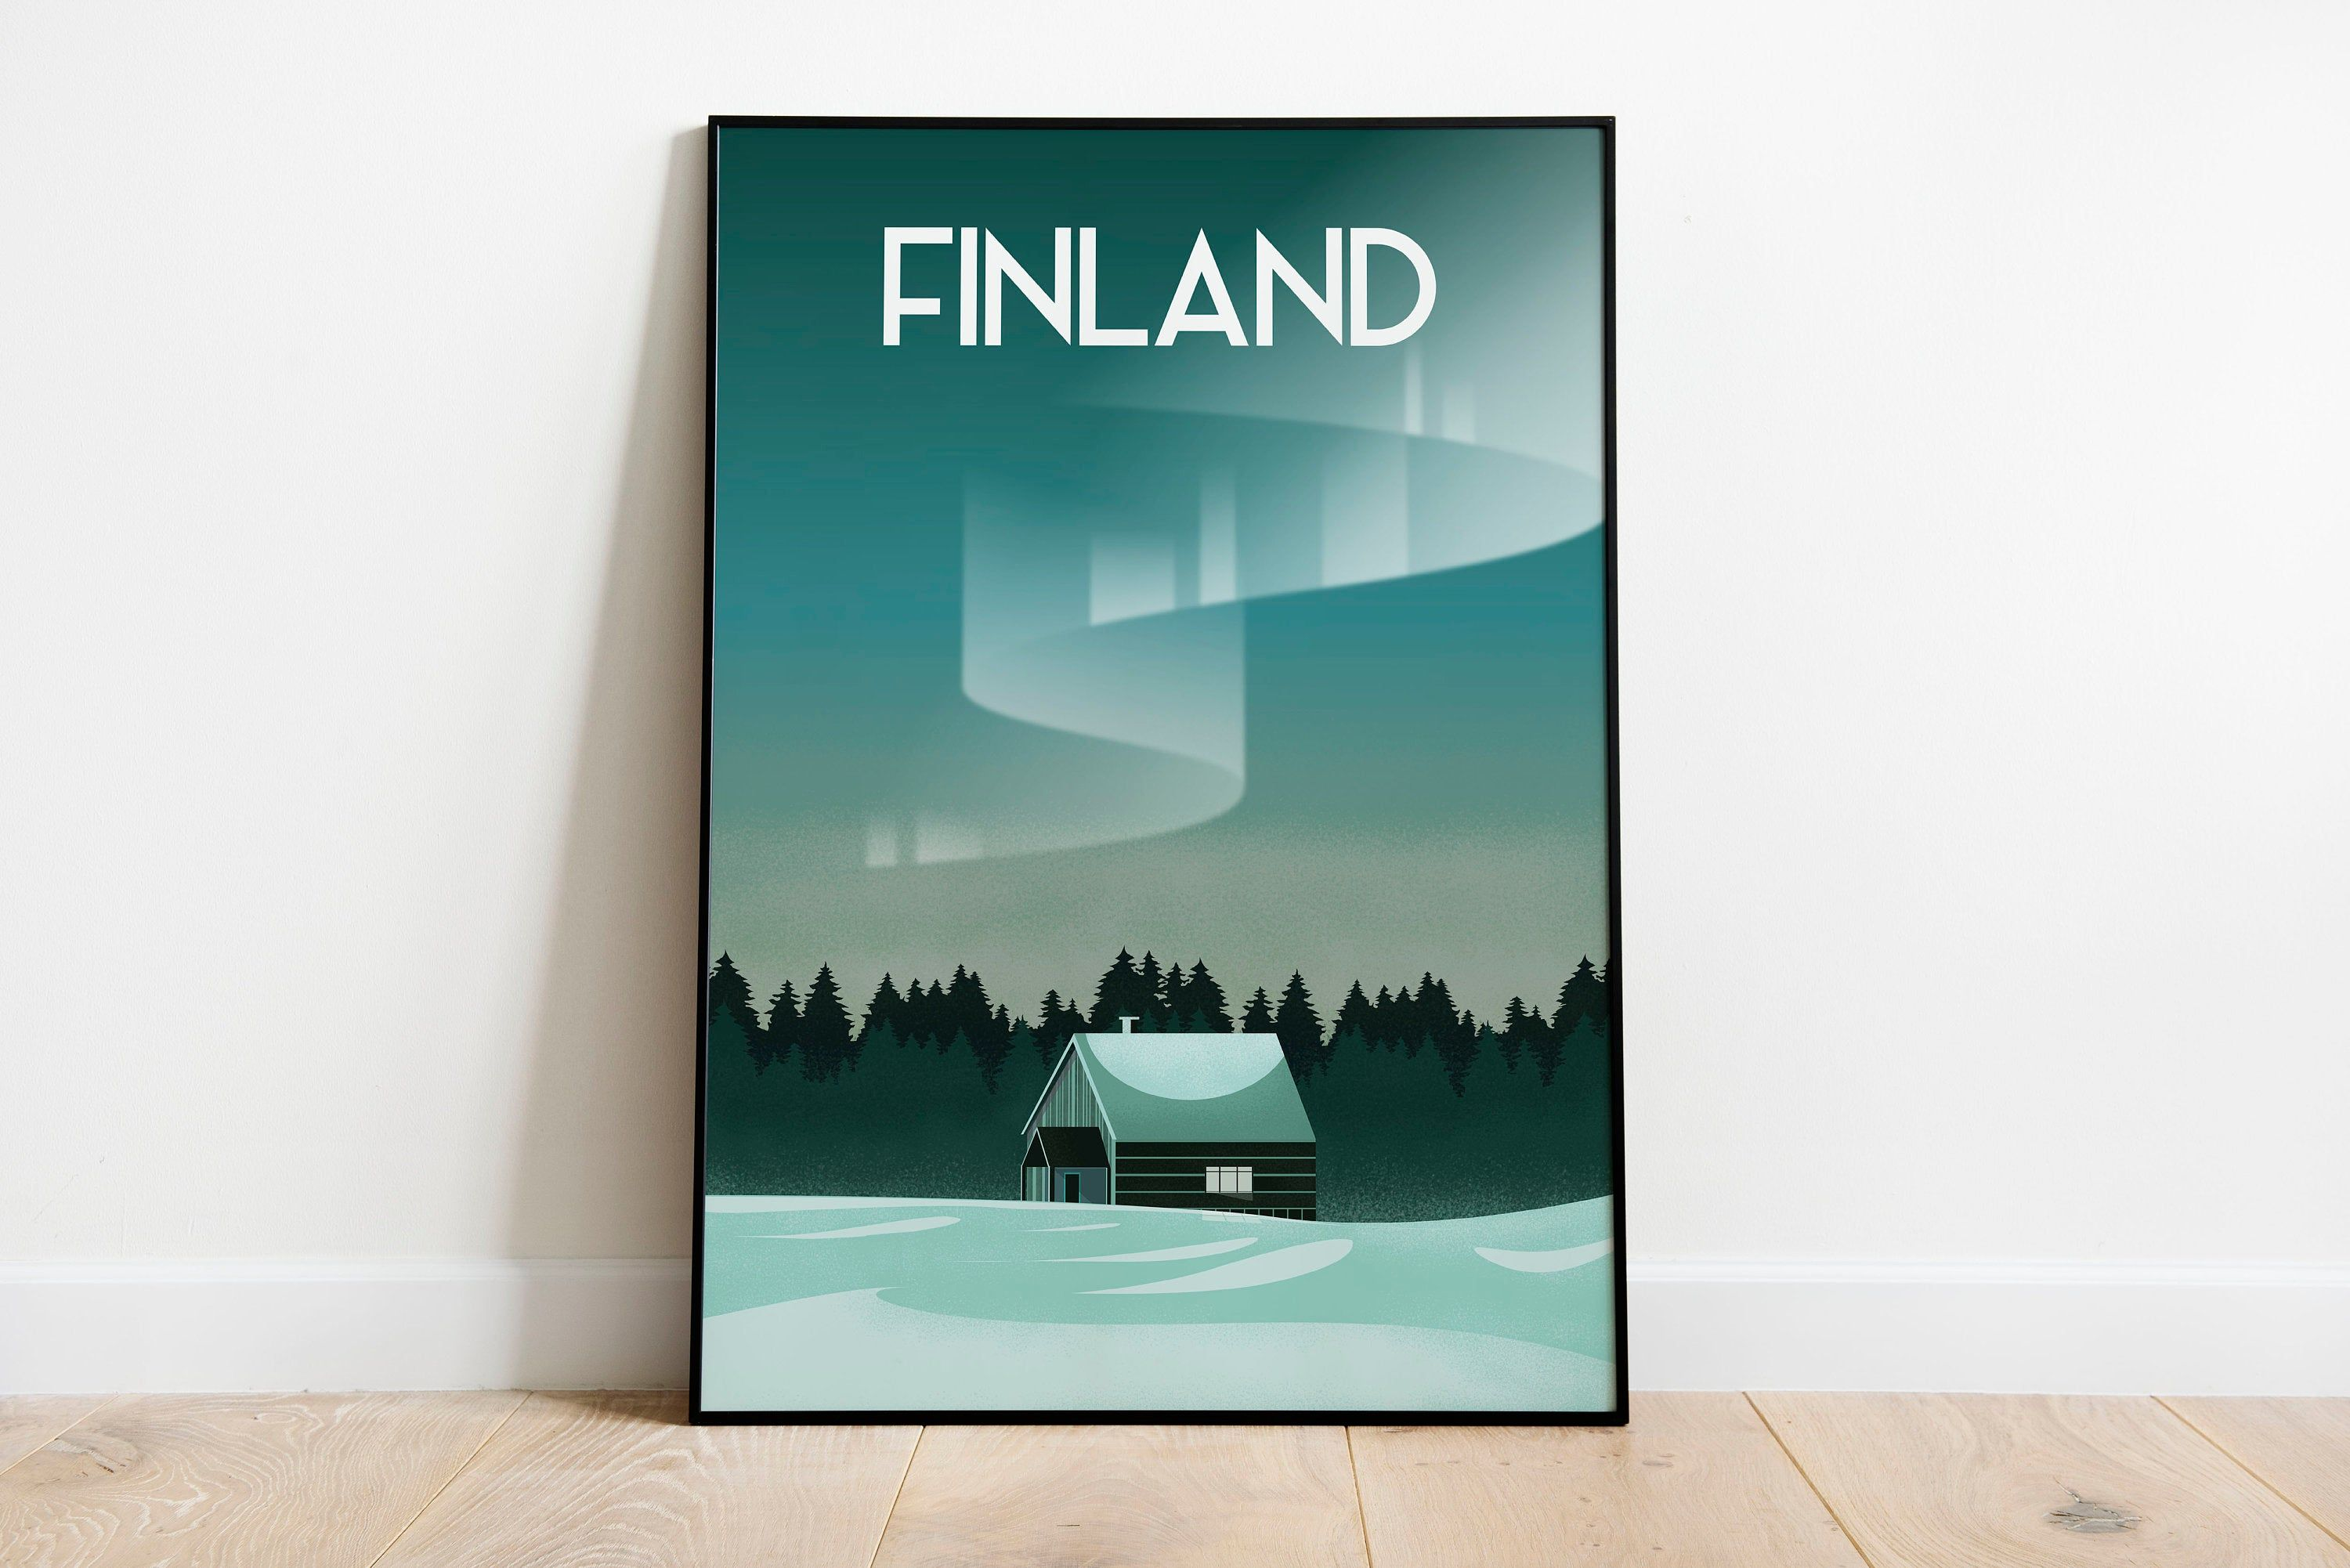 Finland Aurora Borealis Northern Lights Poster Print Sizes Inches 8x10 12x16 18x24 24x36 In 2020 Aurora Borealis Northern Lights Poster Prints Aurora Borealis